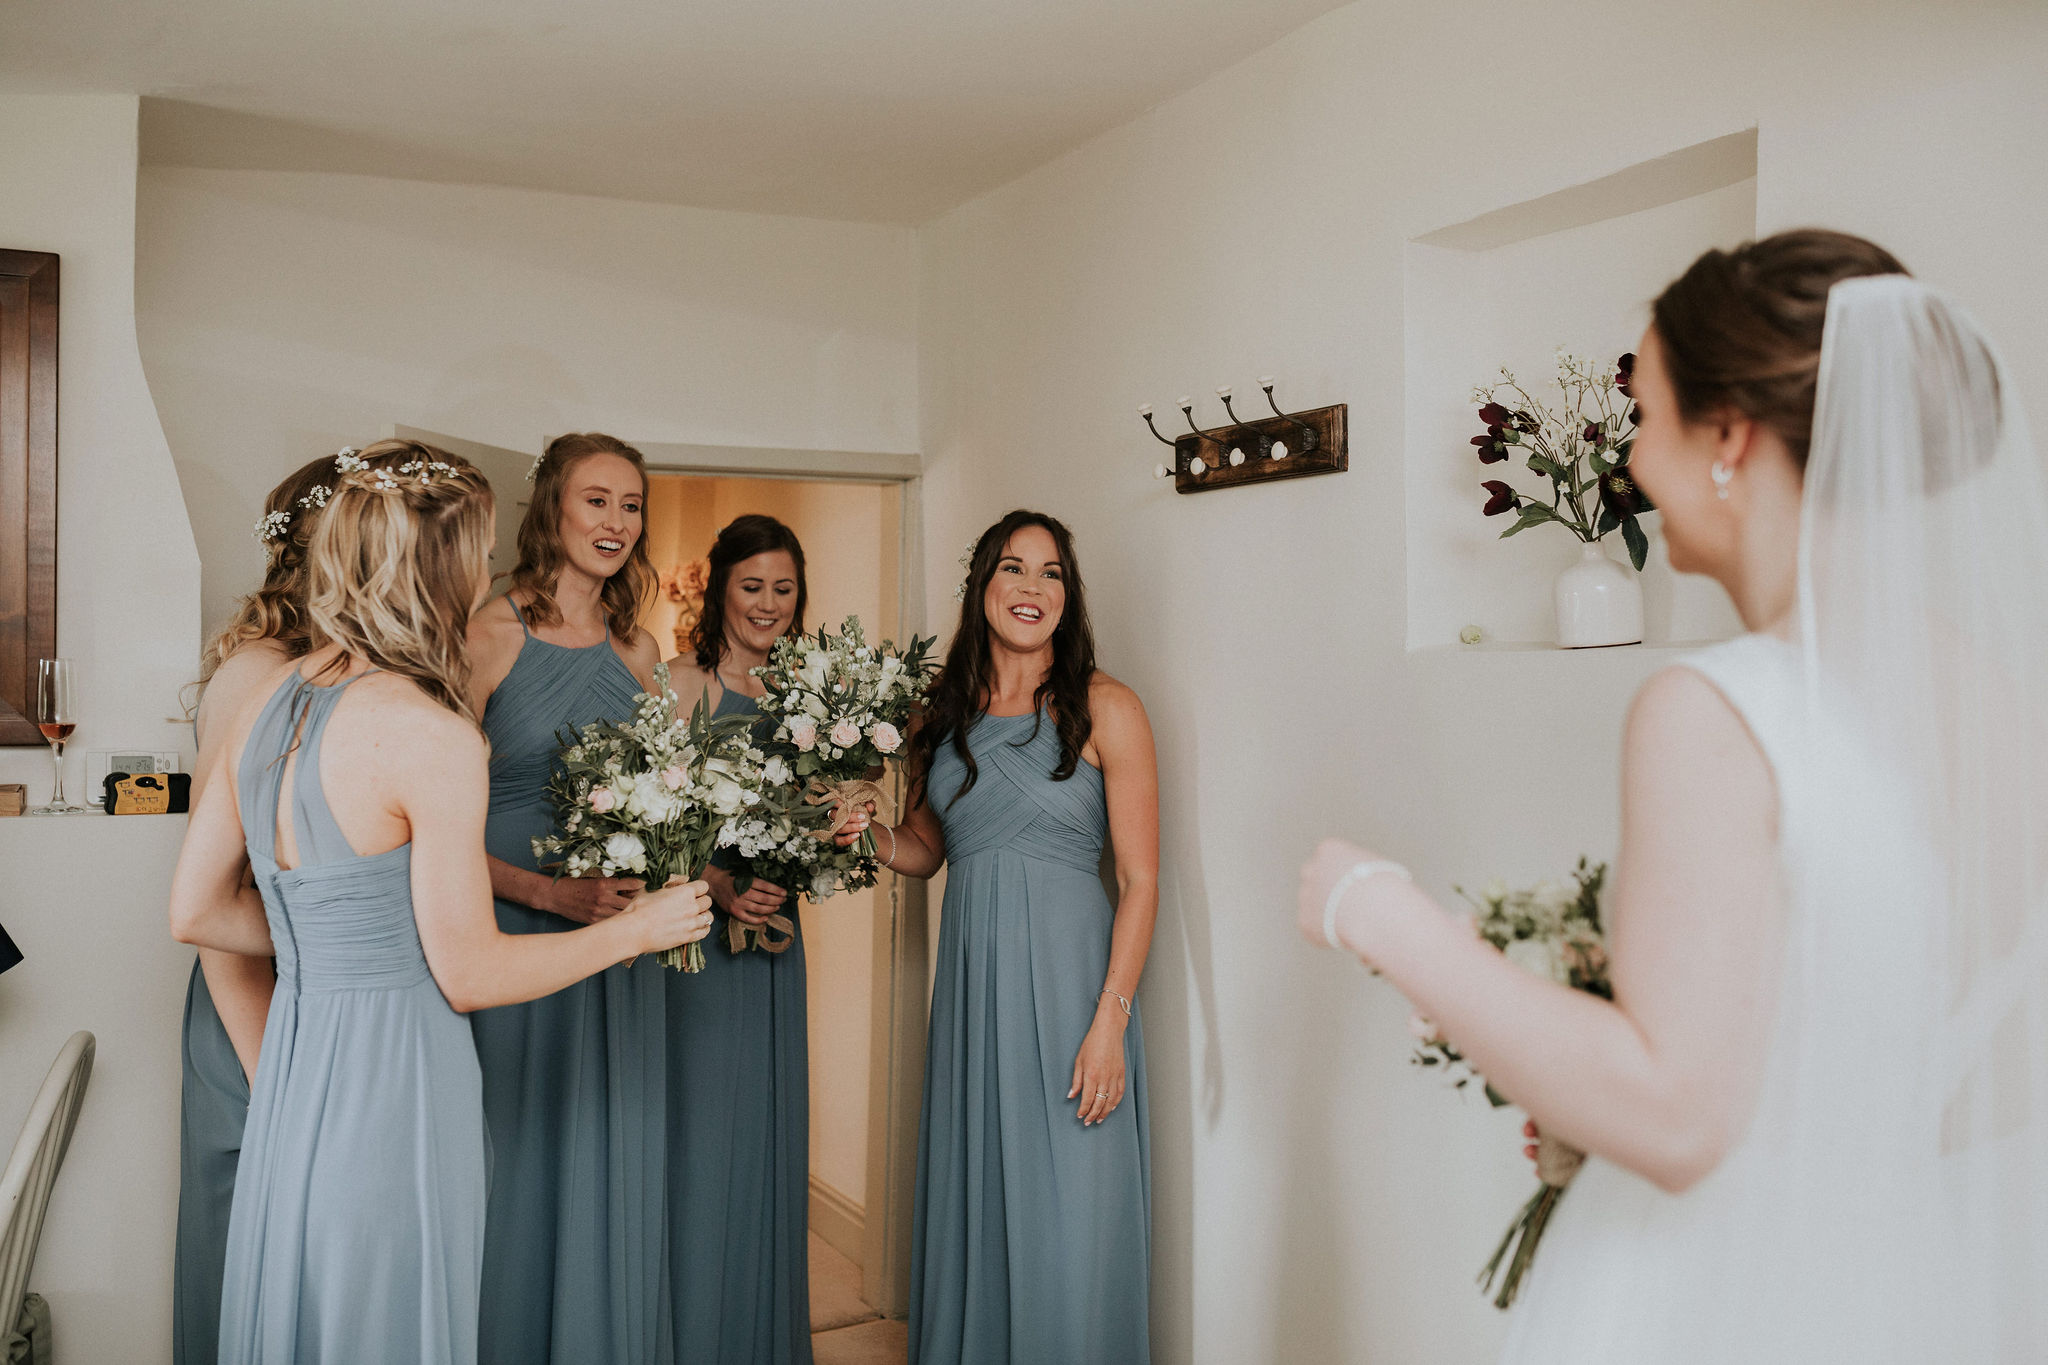 Katie gets her bridesmaids' seal of approval